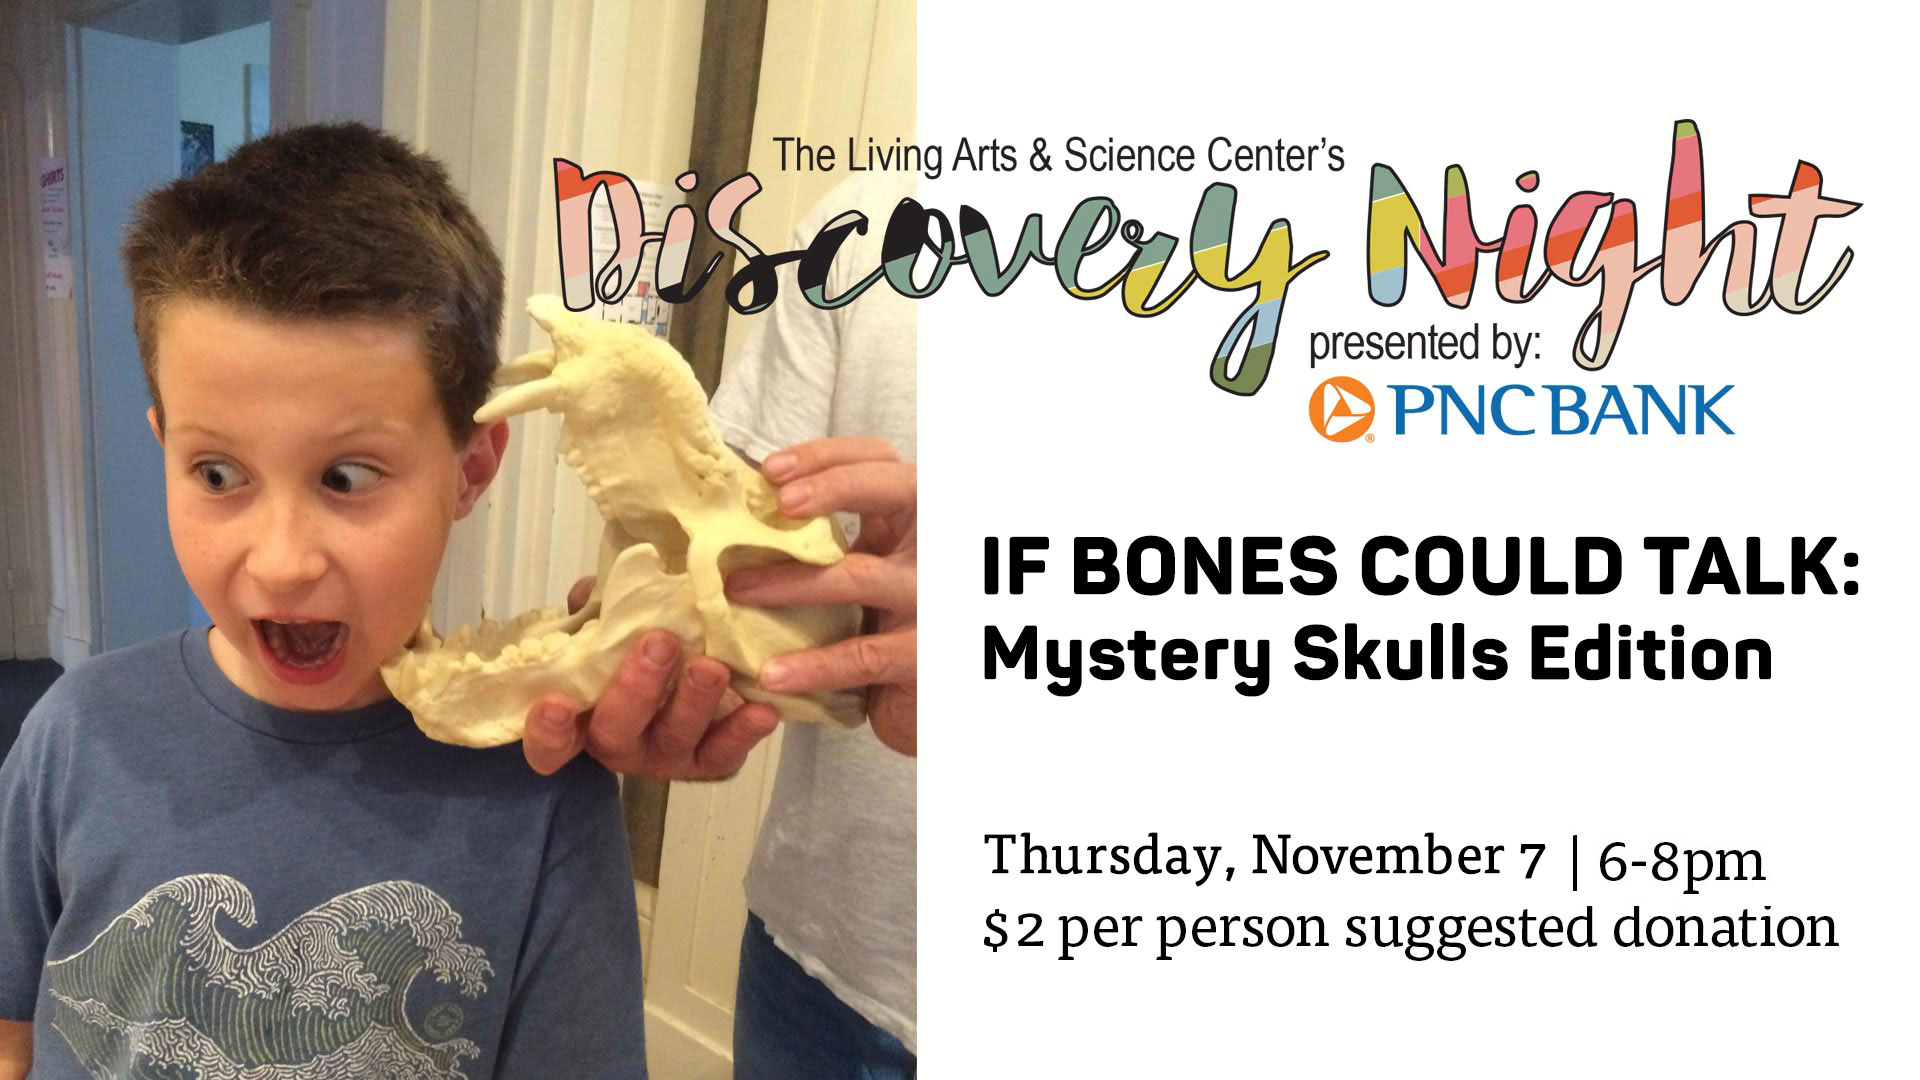 Discovery Night – If Bones Could Talk: Mystery Skulls Edition